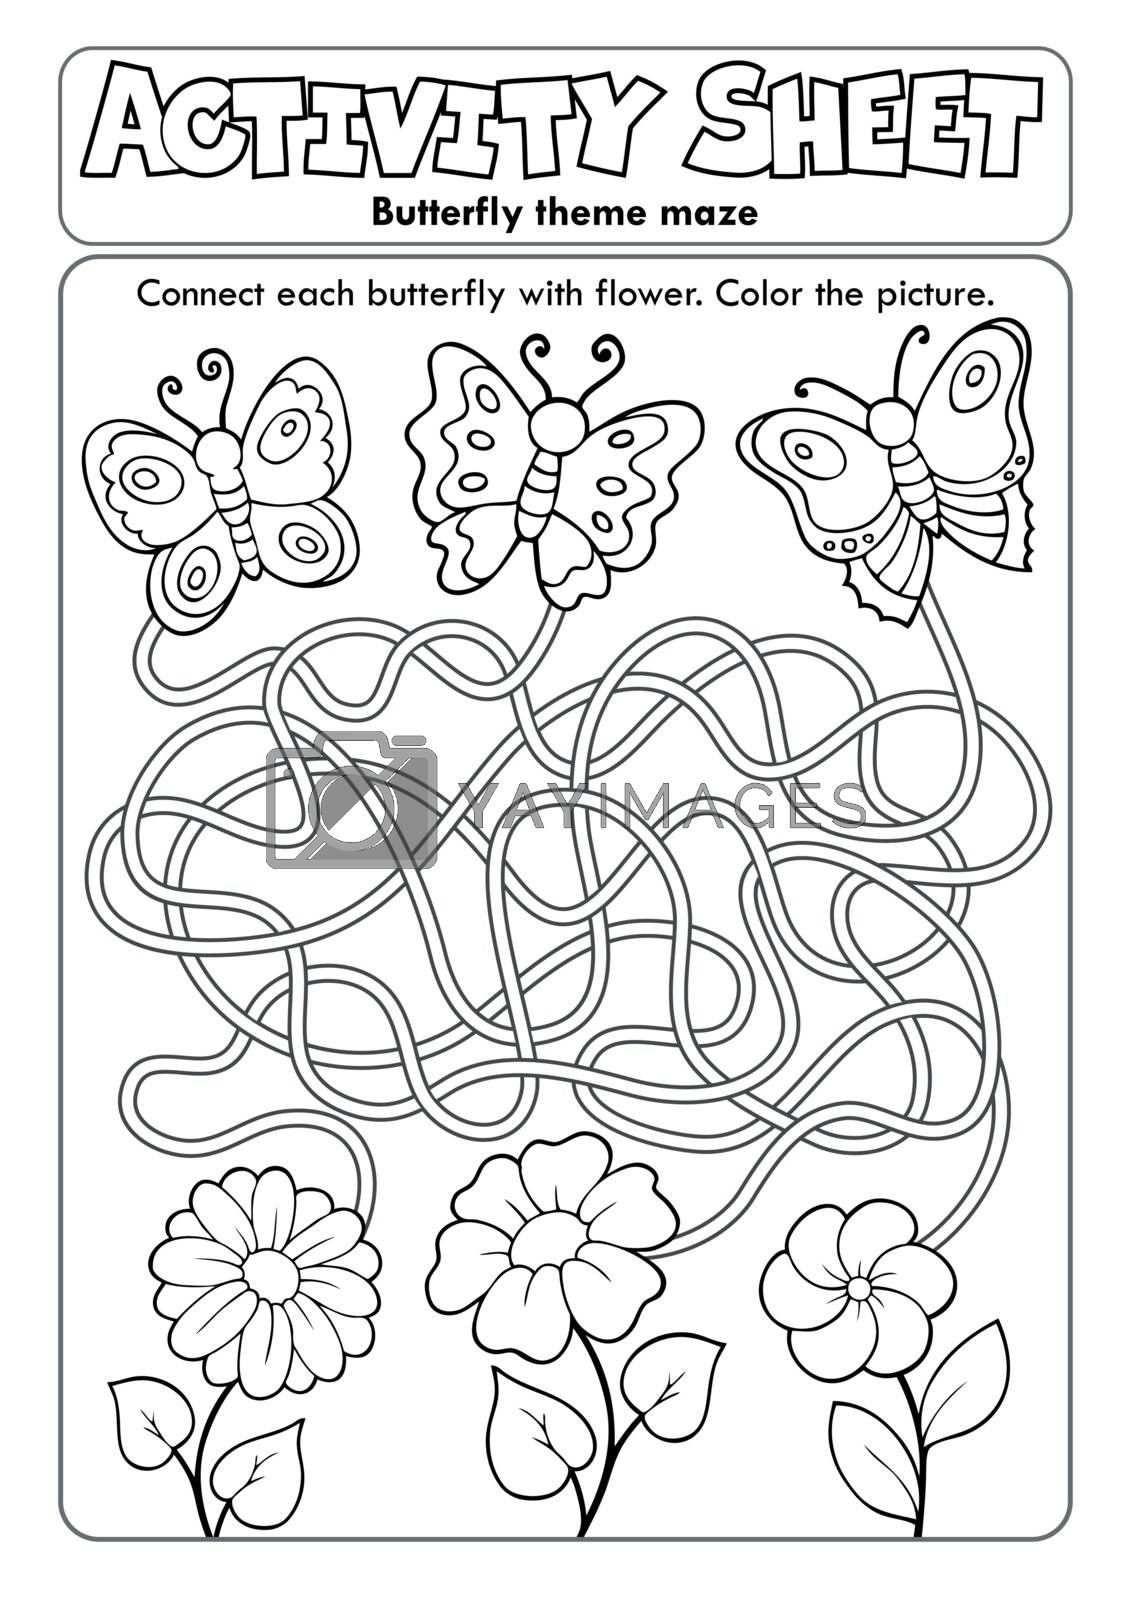 Activity sheet butterfly theme maze - eps10 vector illustration.